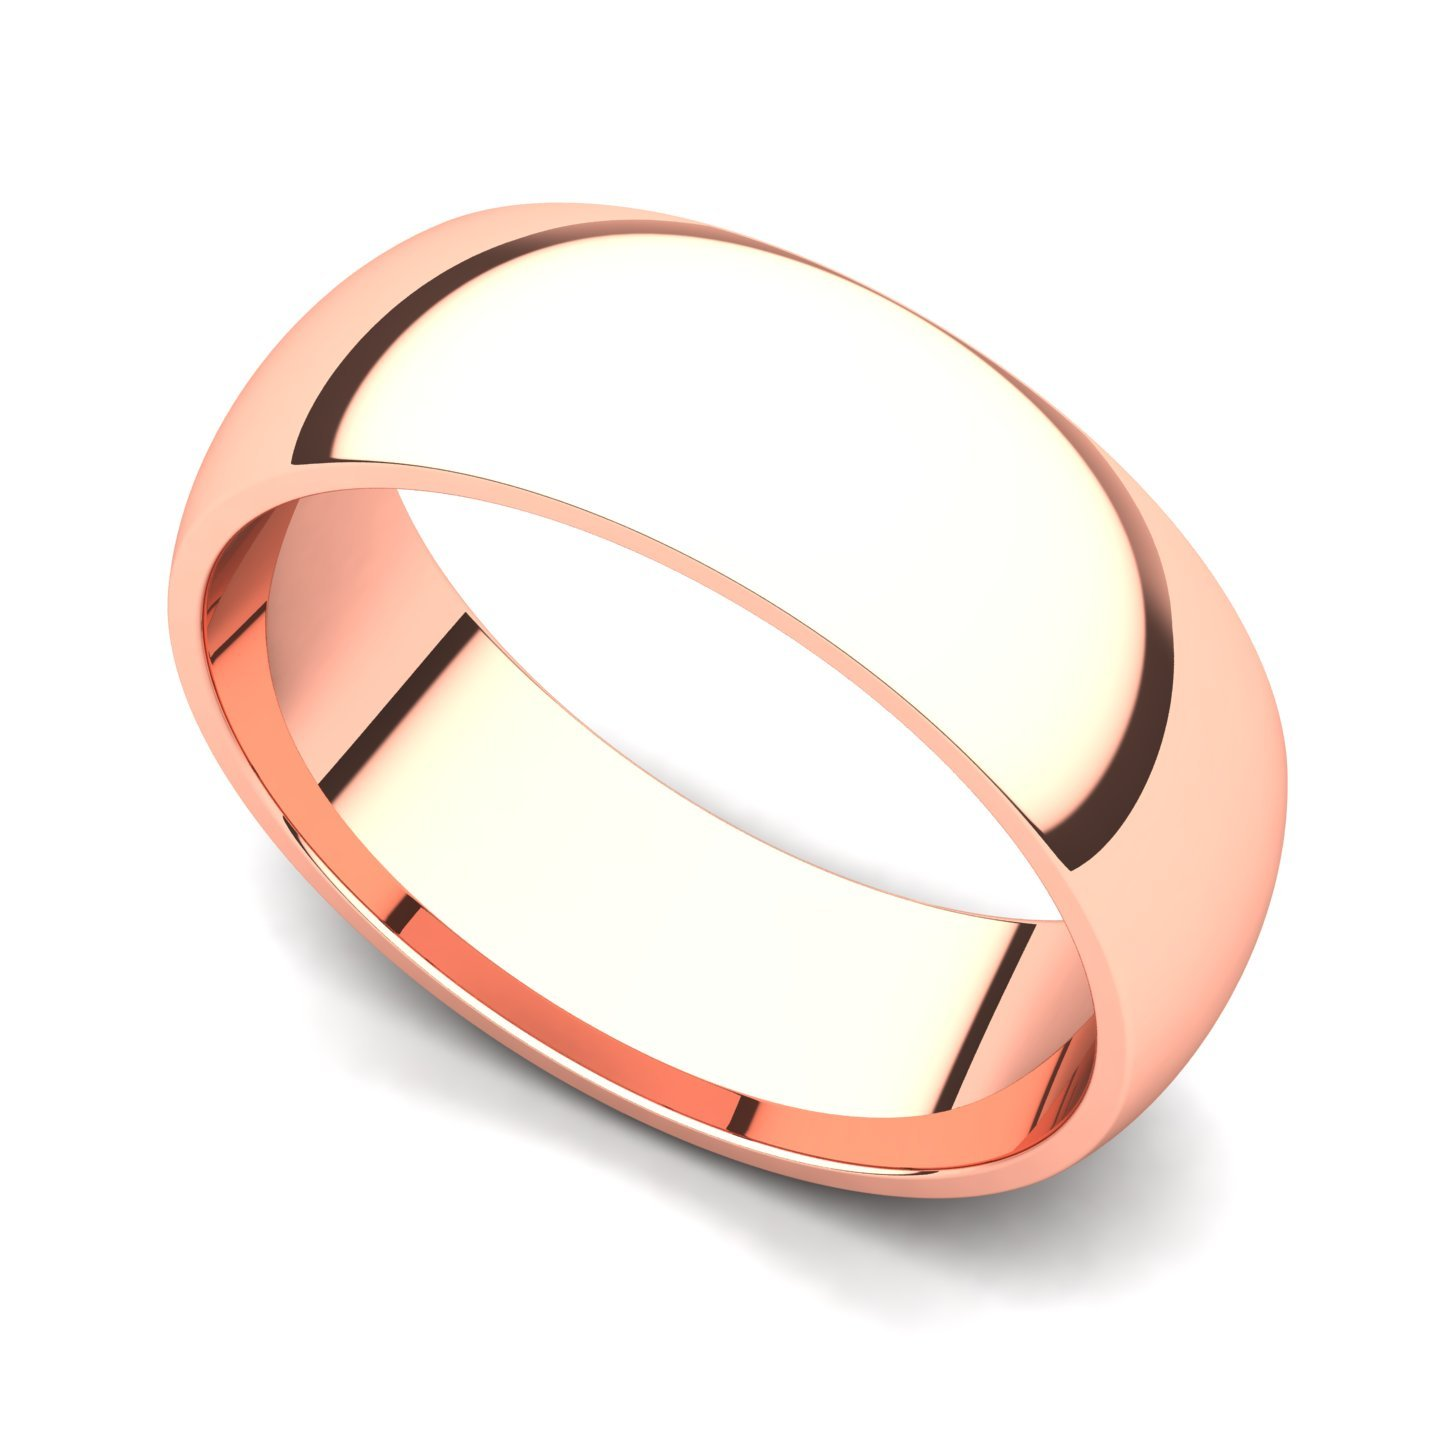 14k Rose Gold 6mm Classic Plain Comfort Fit Wedding Band Ring, 6.5